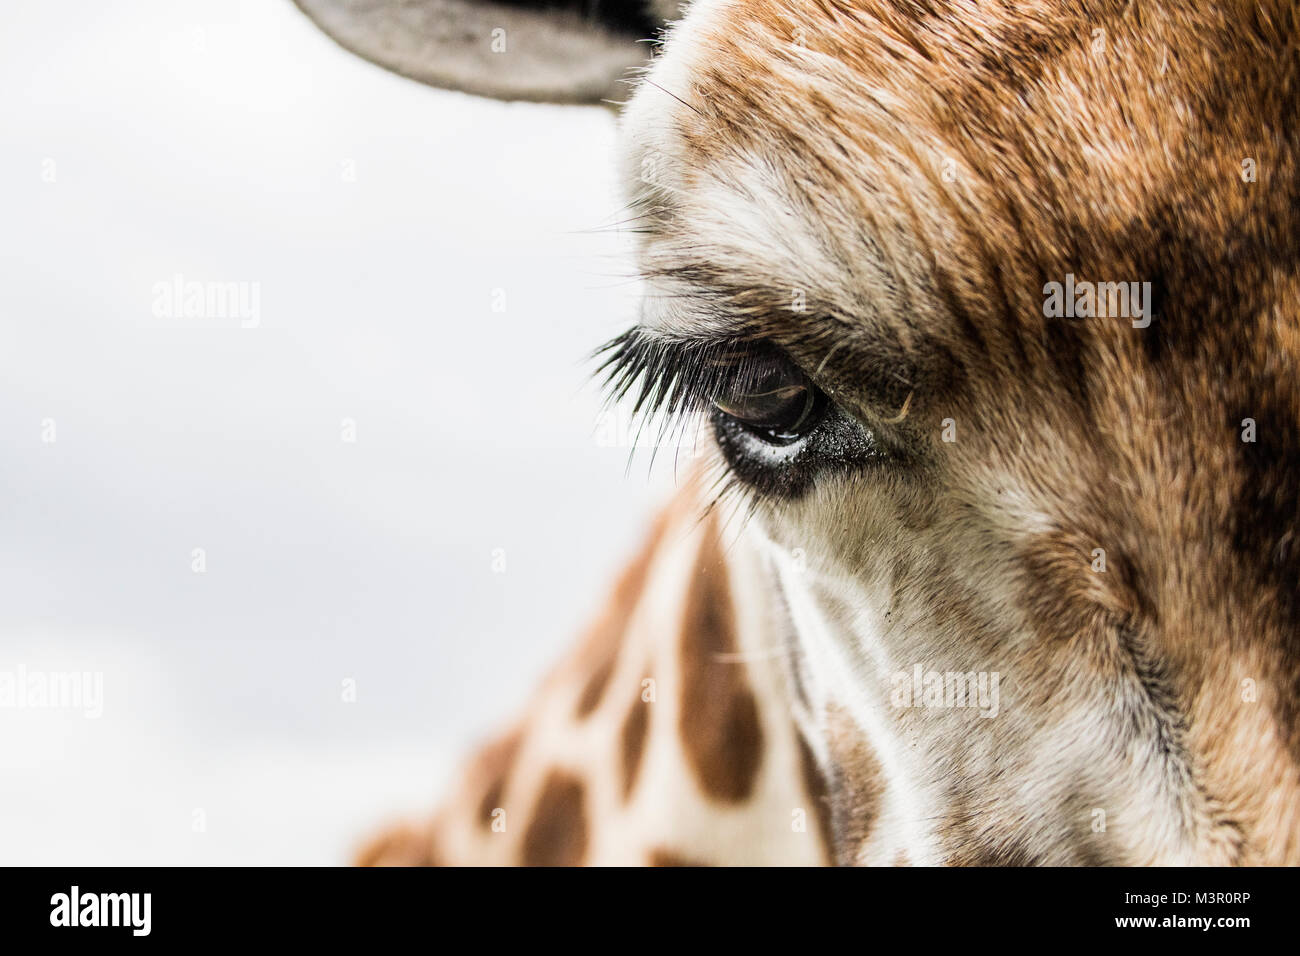 En vous regardant, Close up jeune girafe Photo Stock